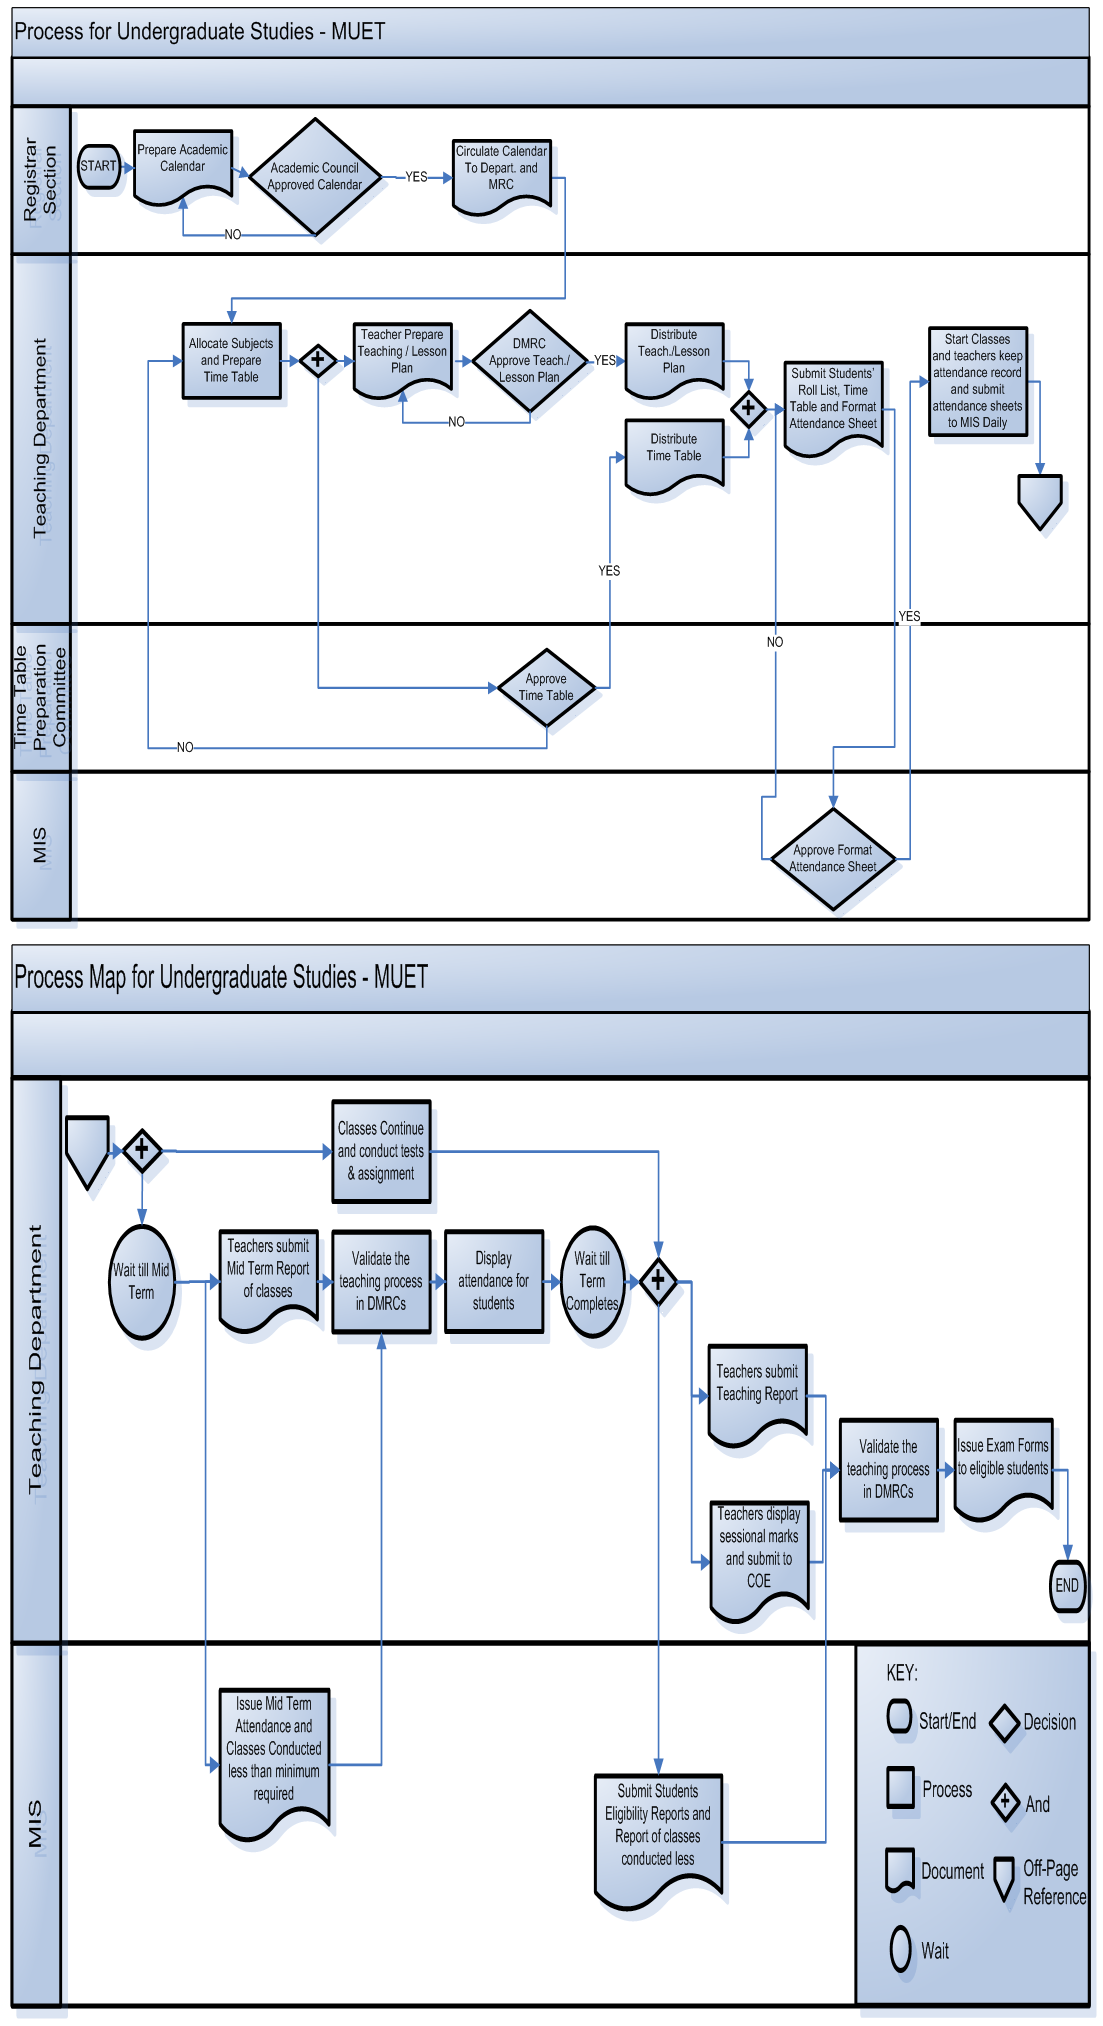 Process Map Undergraduate MUET